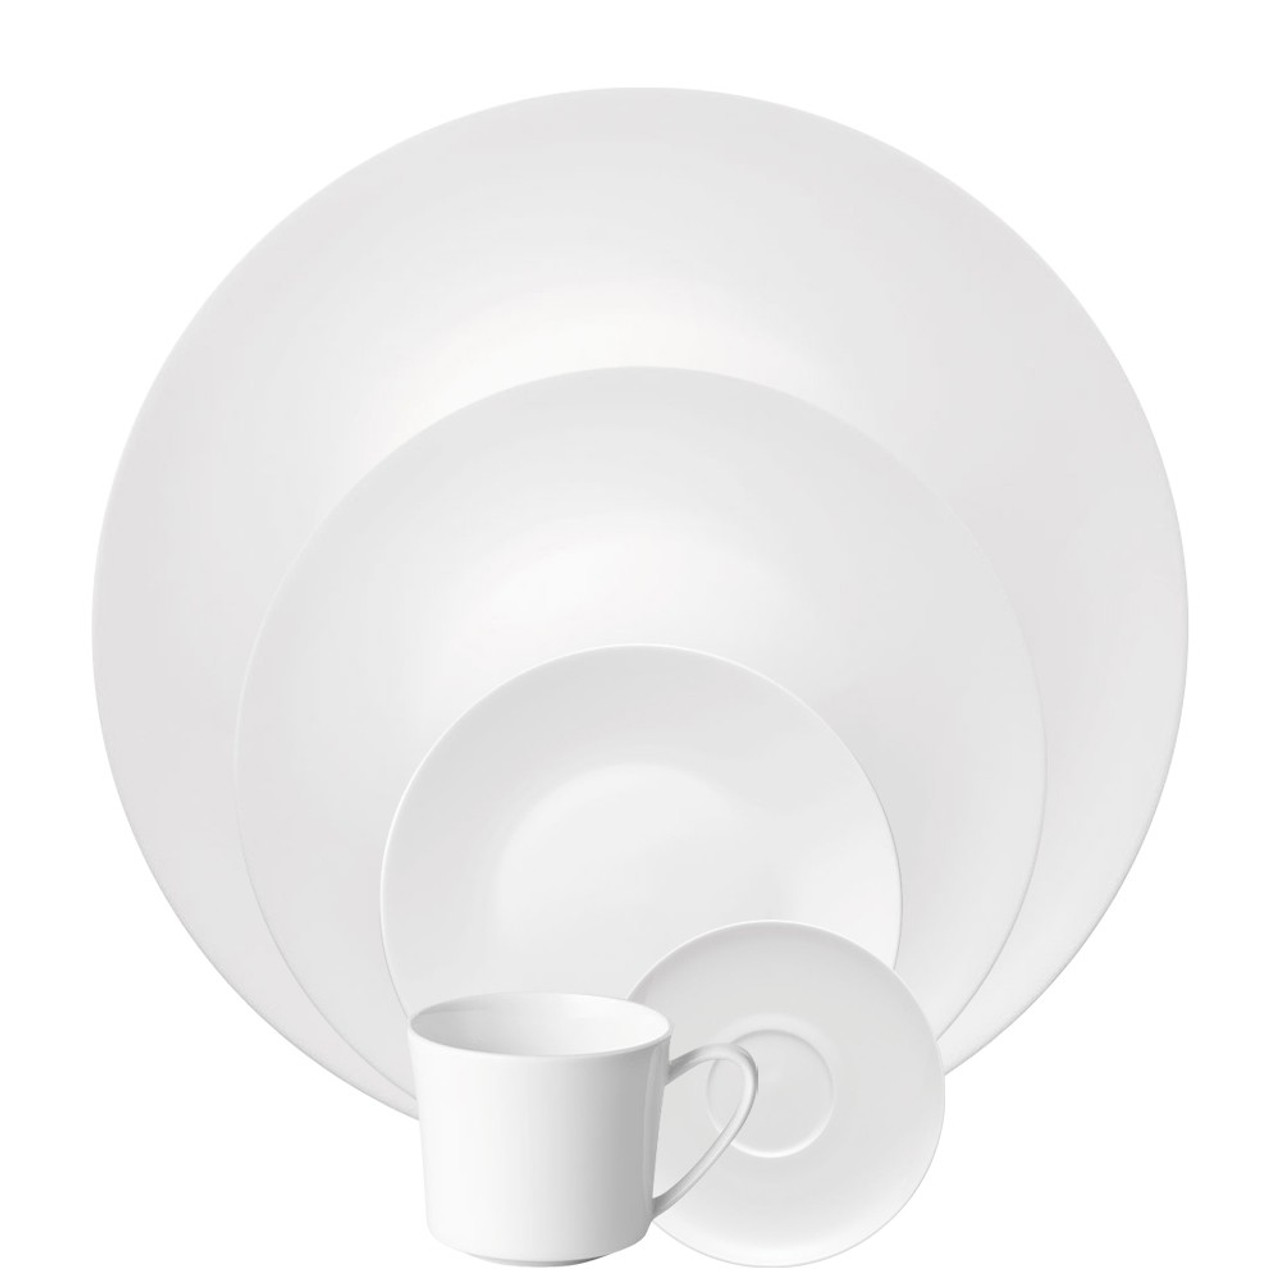 5 Piece Place Setting Coupe (5 pps) | Jade  sc 1 st  Rosenthal & 5 Piece Place Setting Coupe (5 pps) | Jade| Rosenthal Shop